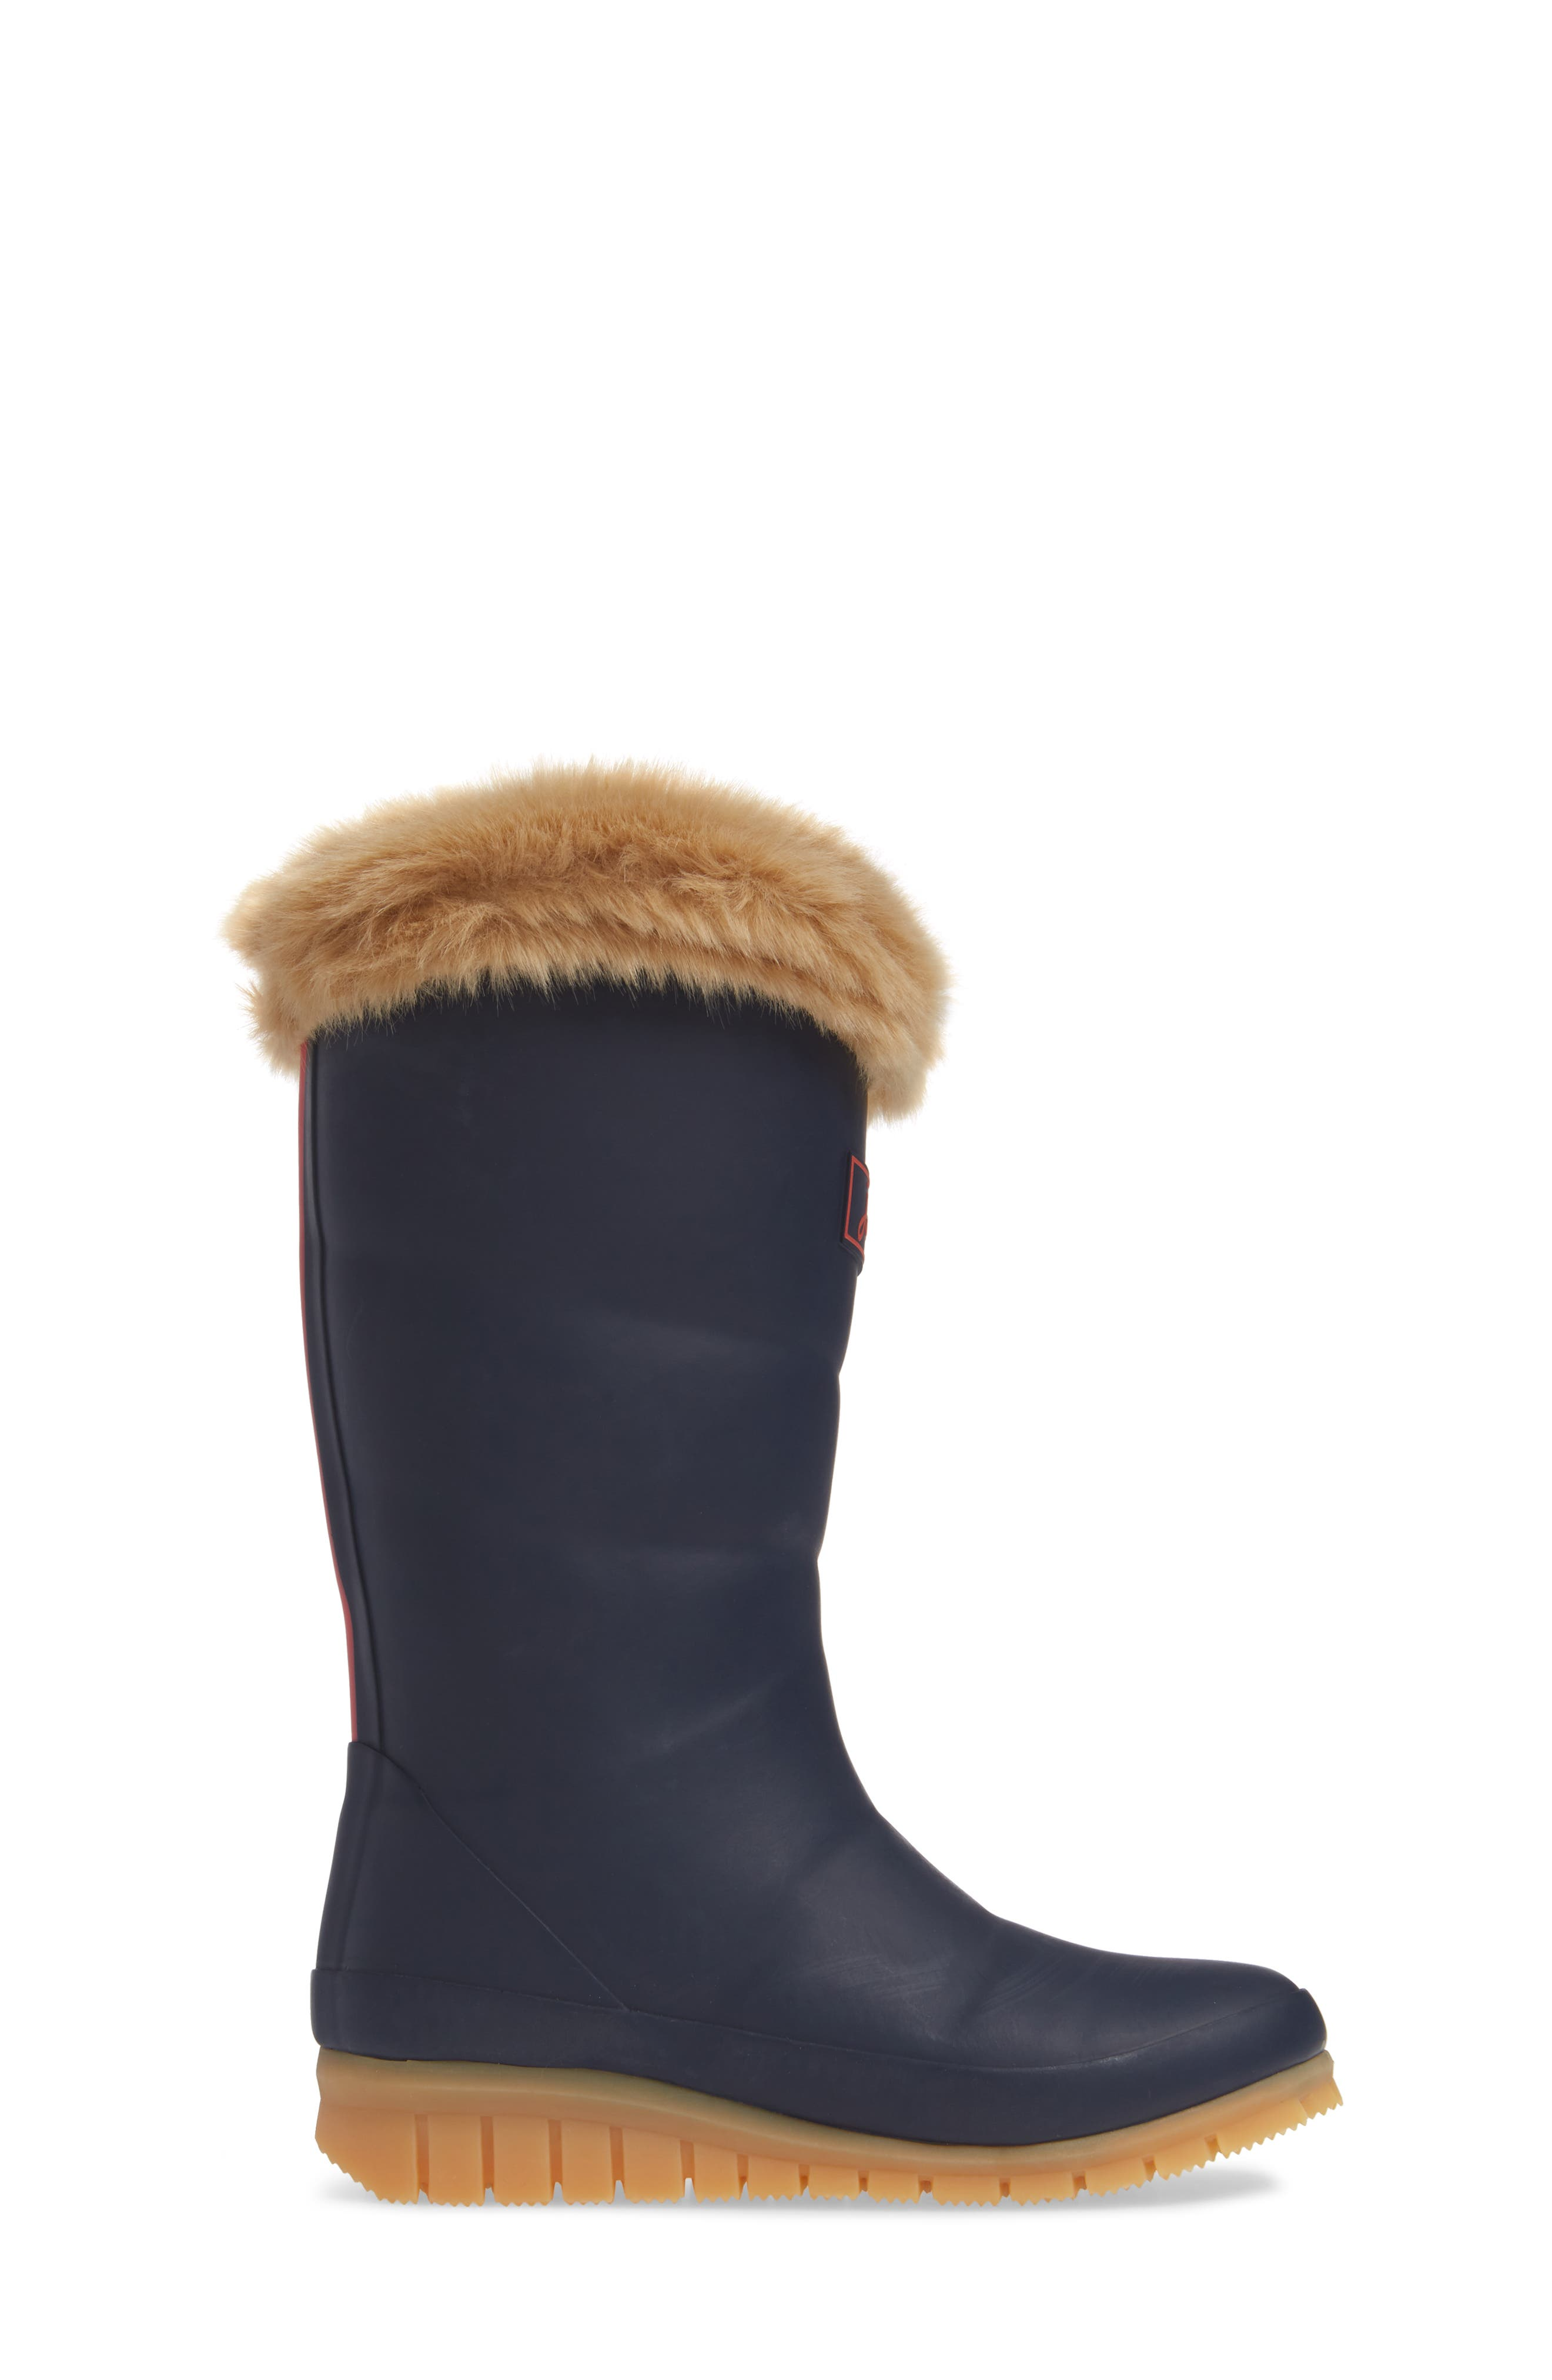 Padded Welly Waterproof Rain Boot with Faux Fur Trim,                             Alternate thumbnail 3, color,                             FRENCH NAVY